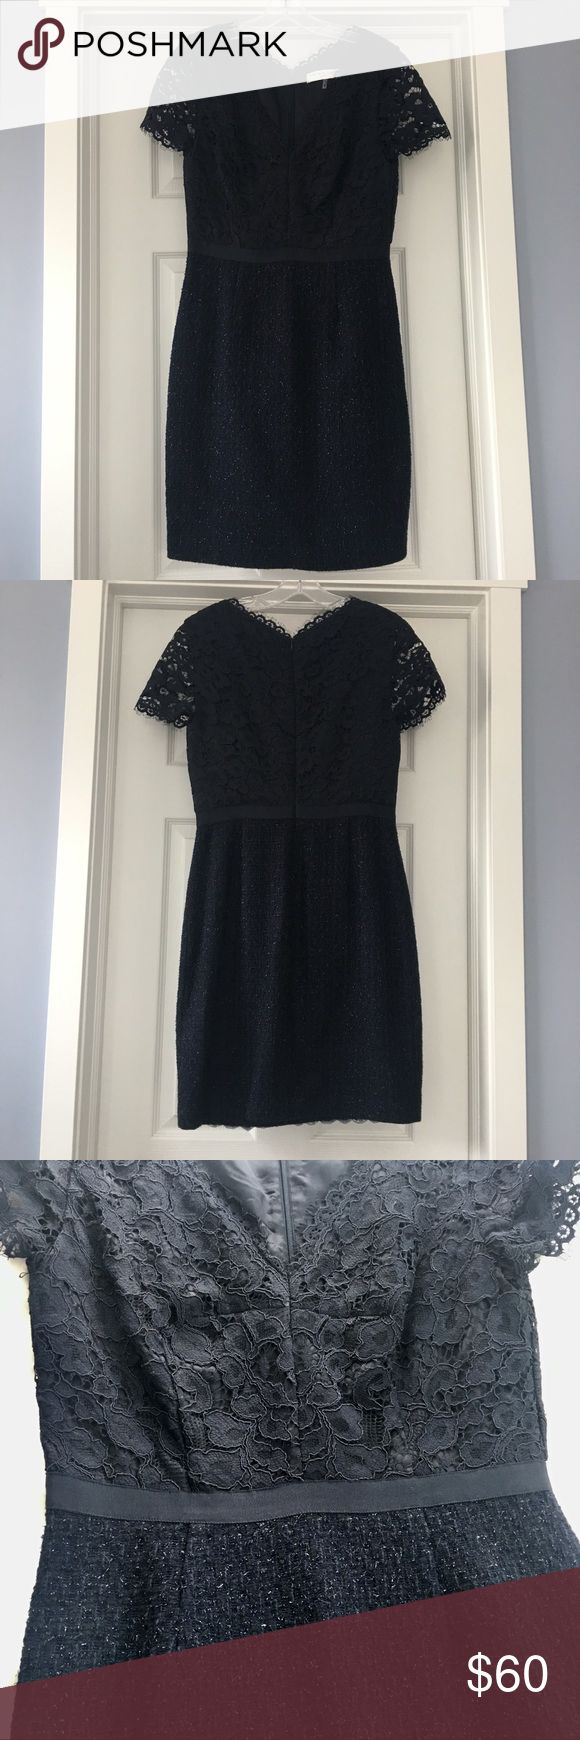 Trina Turk lace and Tweed Dress Trina Turk dress with lace top and tweed bottom. Very flattering! Trina Turk Dresses